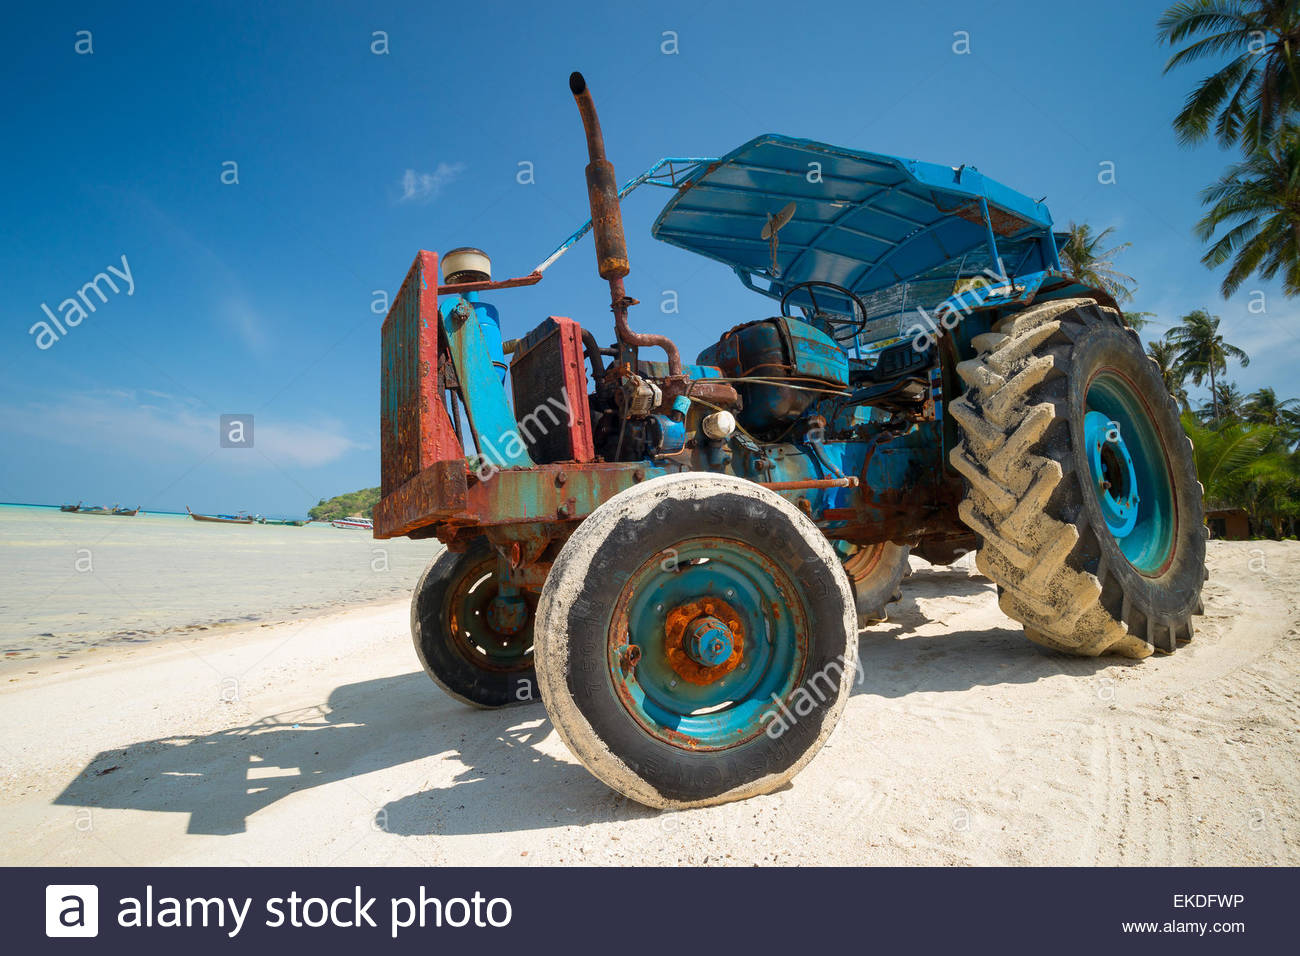 Blue tractor on a beach : used to carry people and goods from and to the boats at low tide - Stock Image